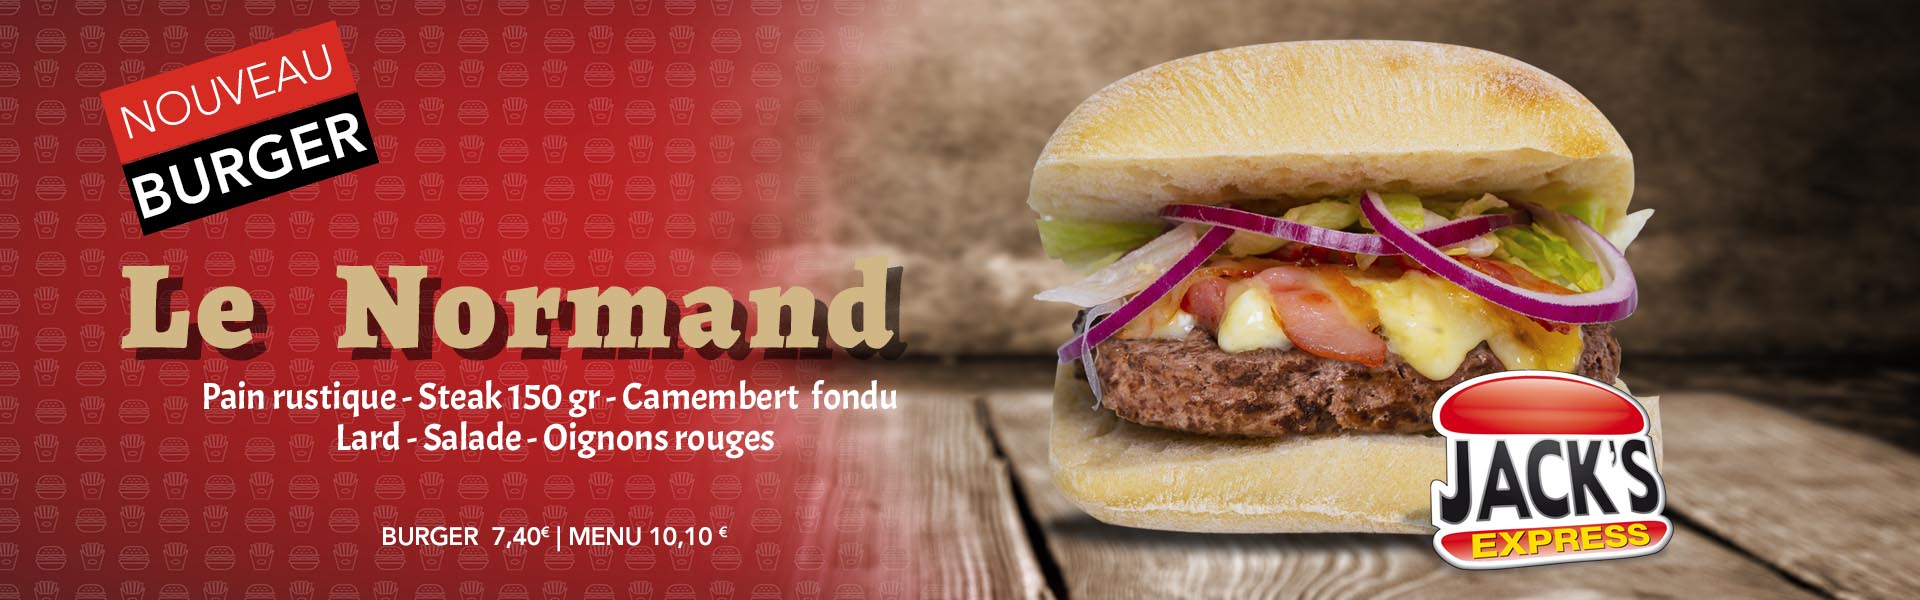 Burger le Normand